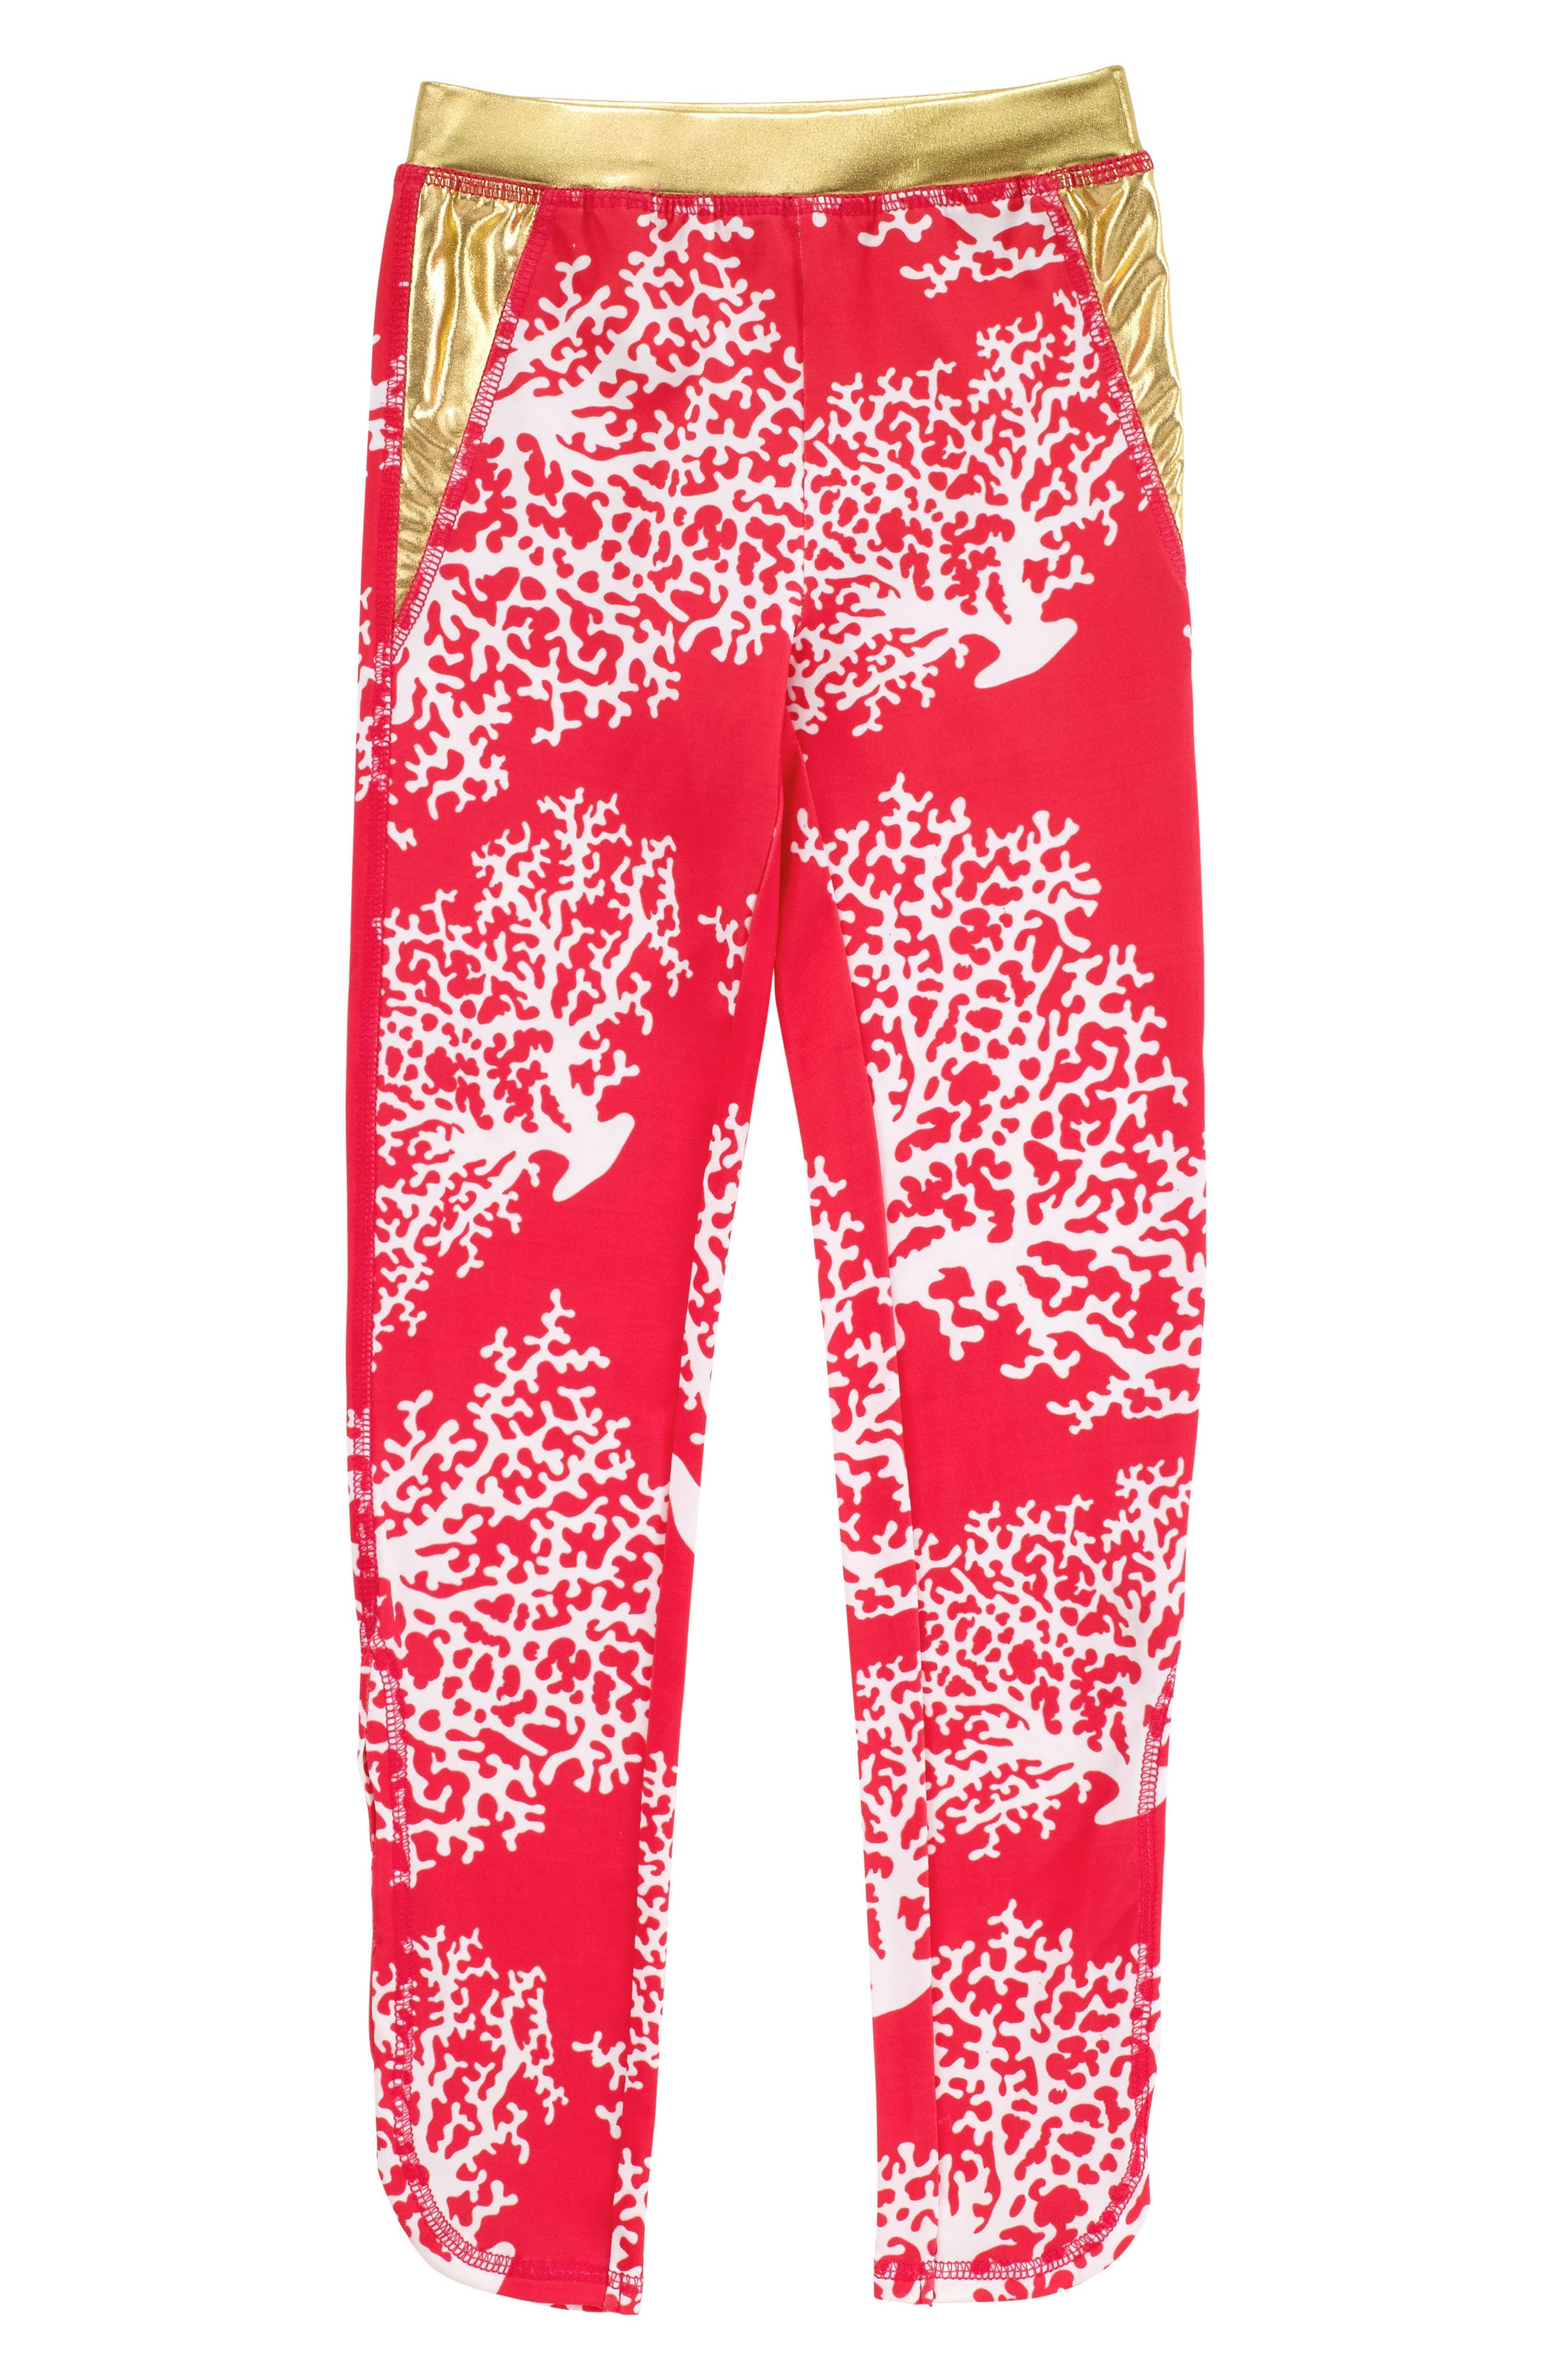 Coral Print Actiplay Leggings,                             Main thumbnail 1, color,                             600